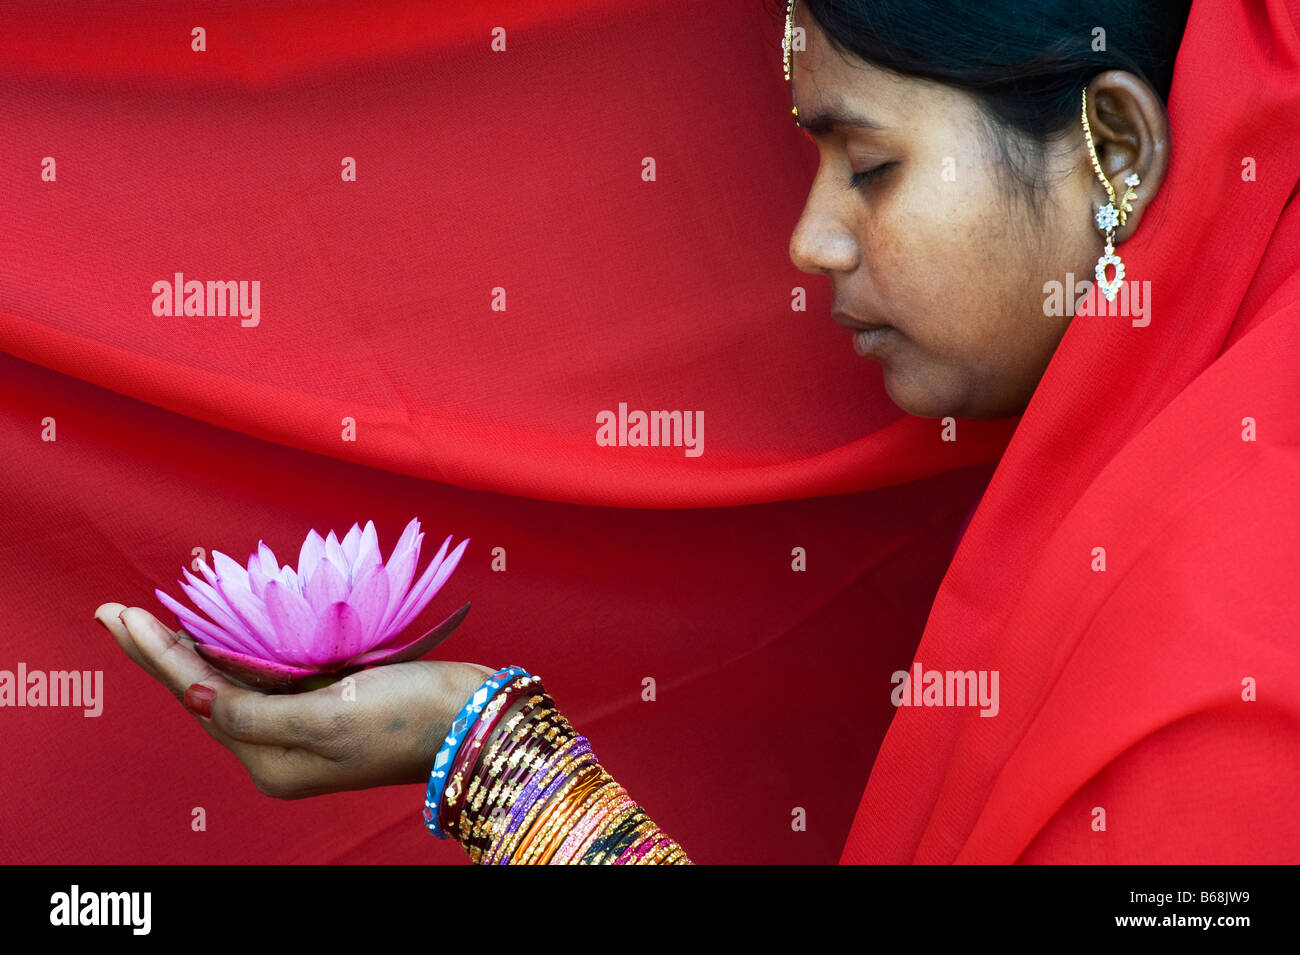 Indian woman offering a Nymphaea Tropical waterlily flower in a red sari - Stock Image